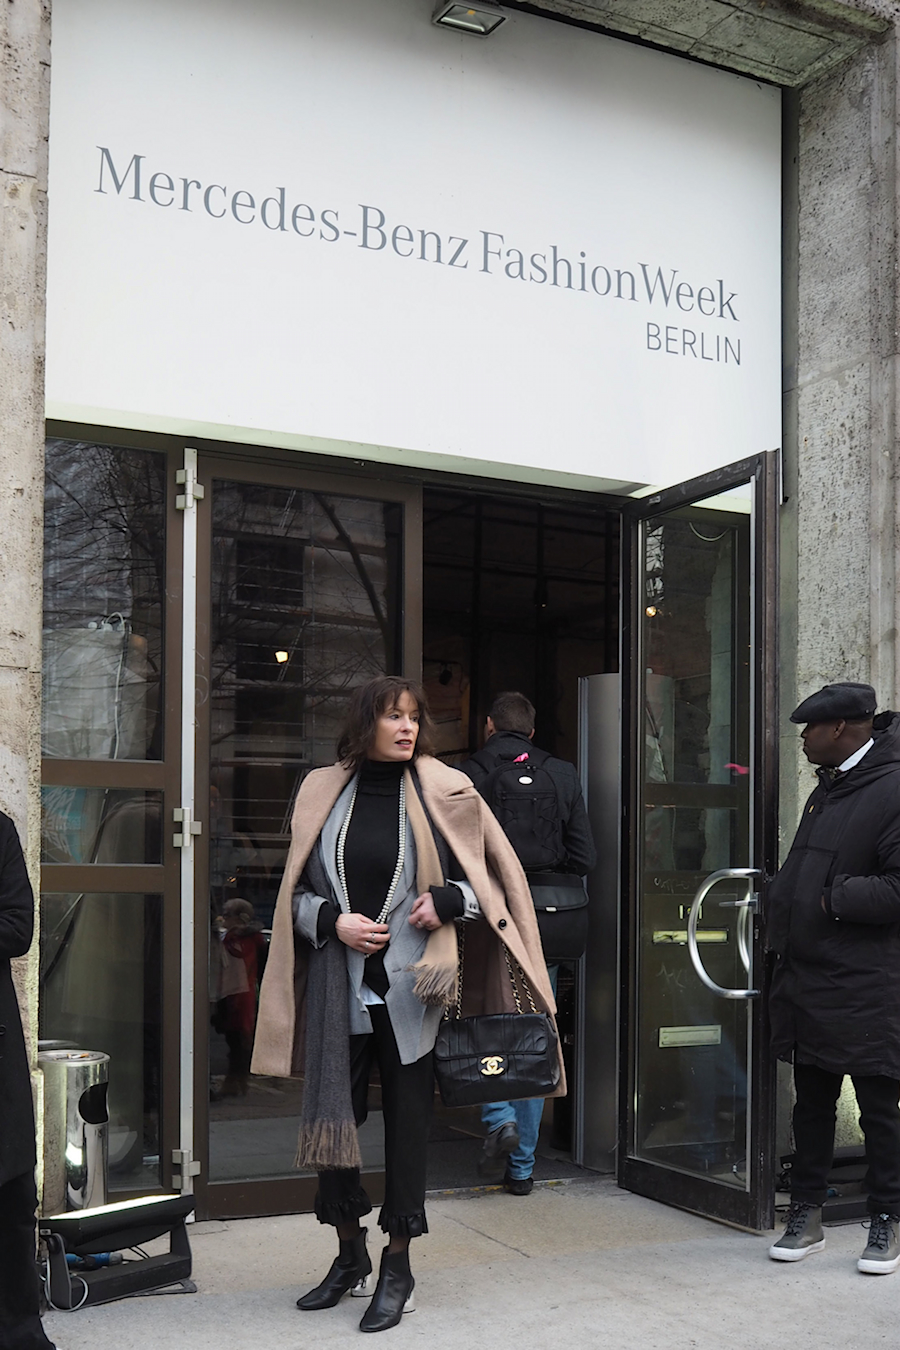 Just-take-a-look.berlin - Berliner Fashion Week